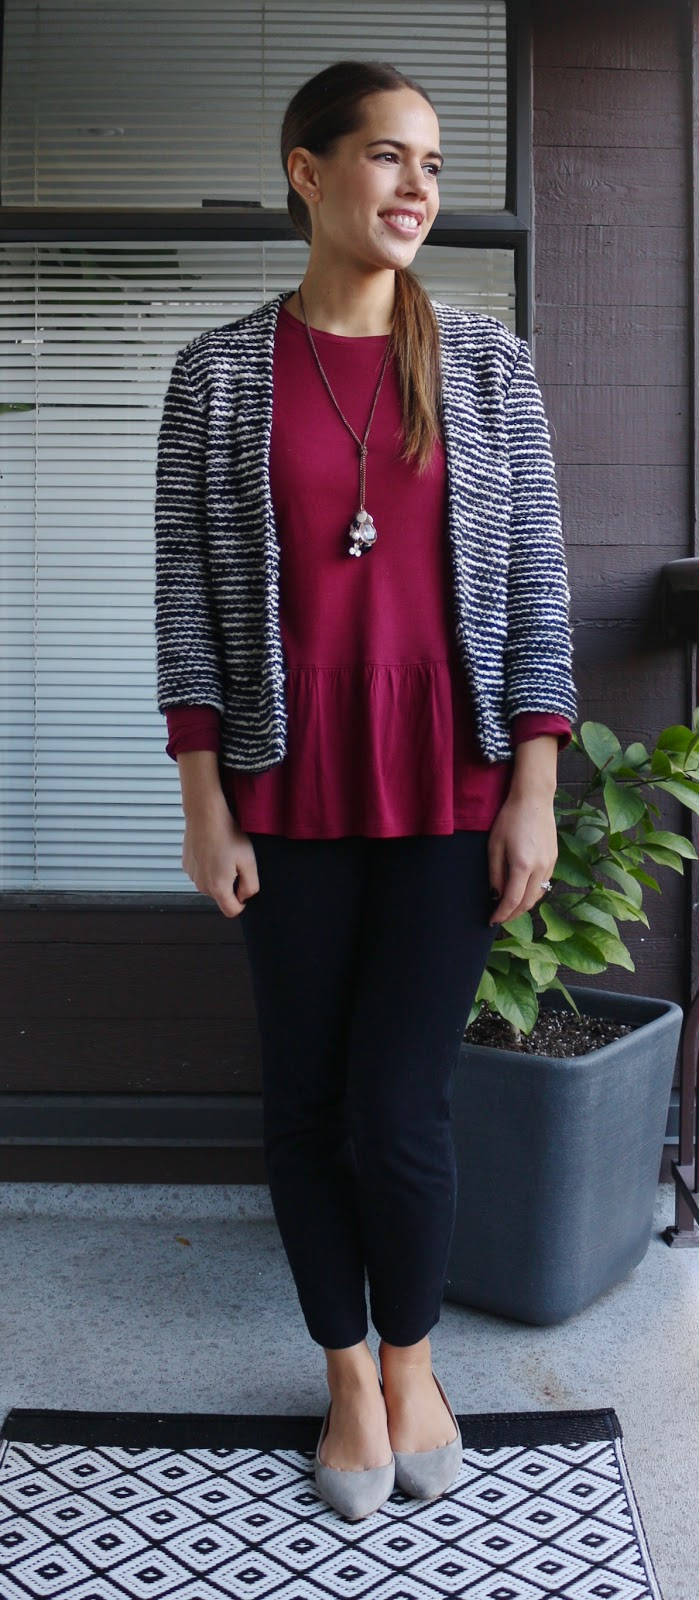 Jules in Flats - Peplum Tee with Tweedi-sh Jacket